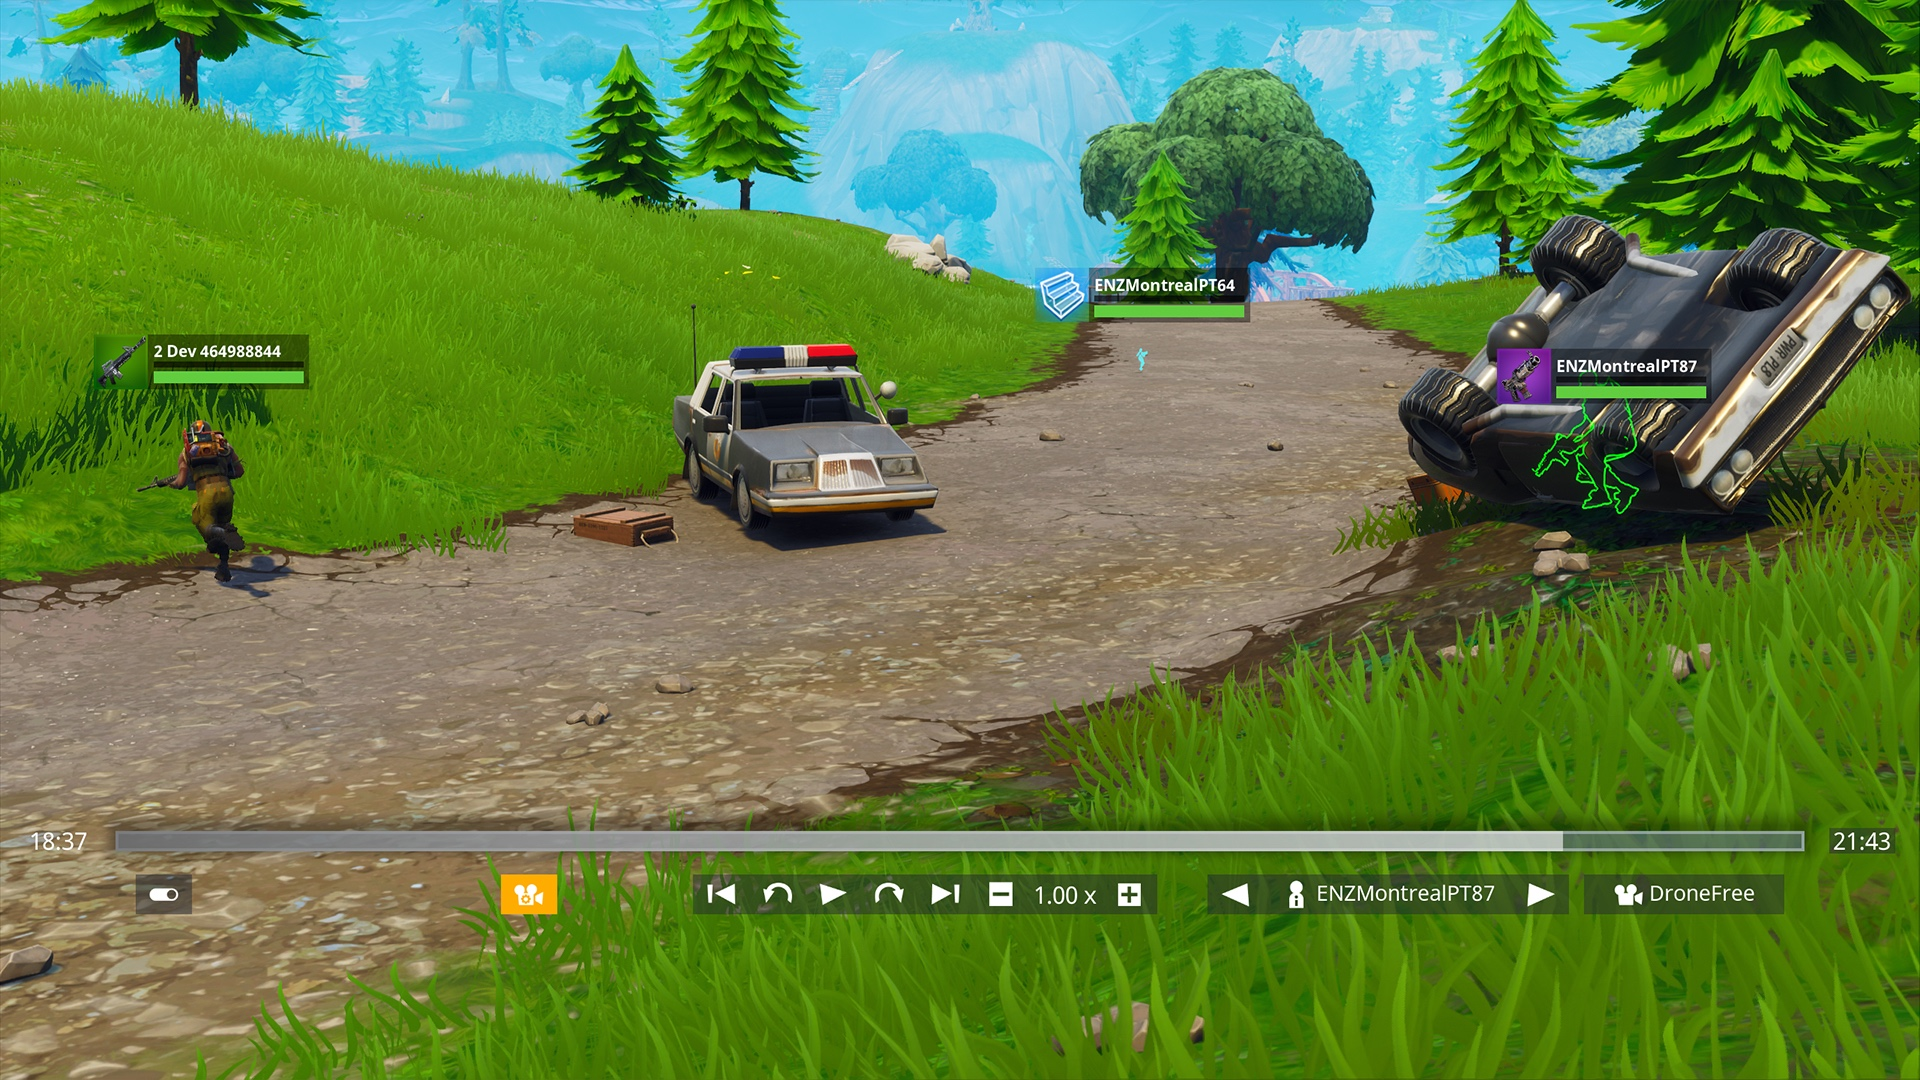 Fortnite Battle Royale's getting built-in replay tools - Polygon